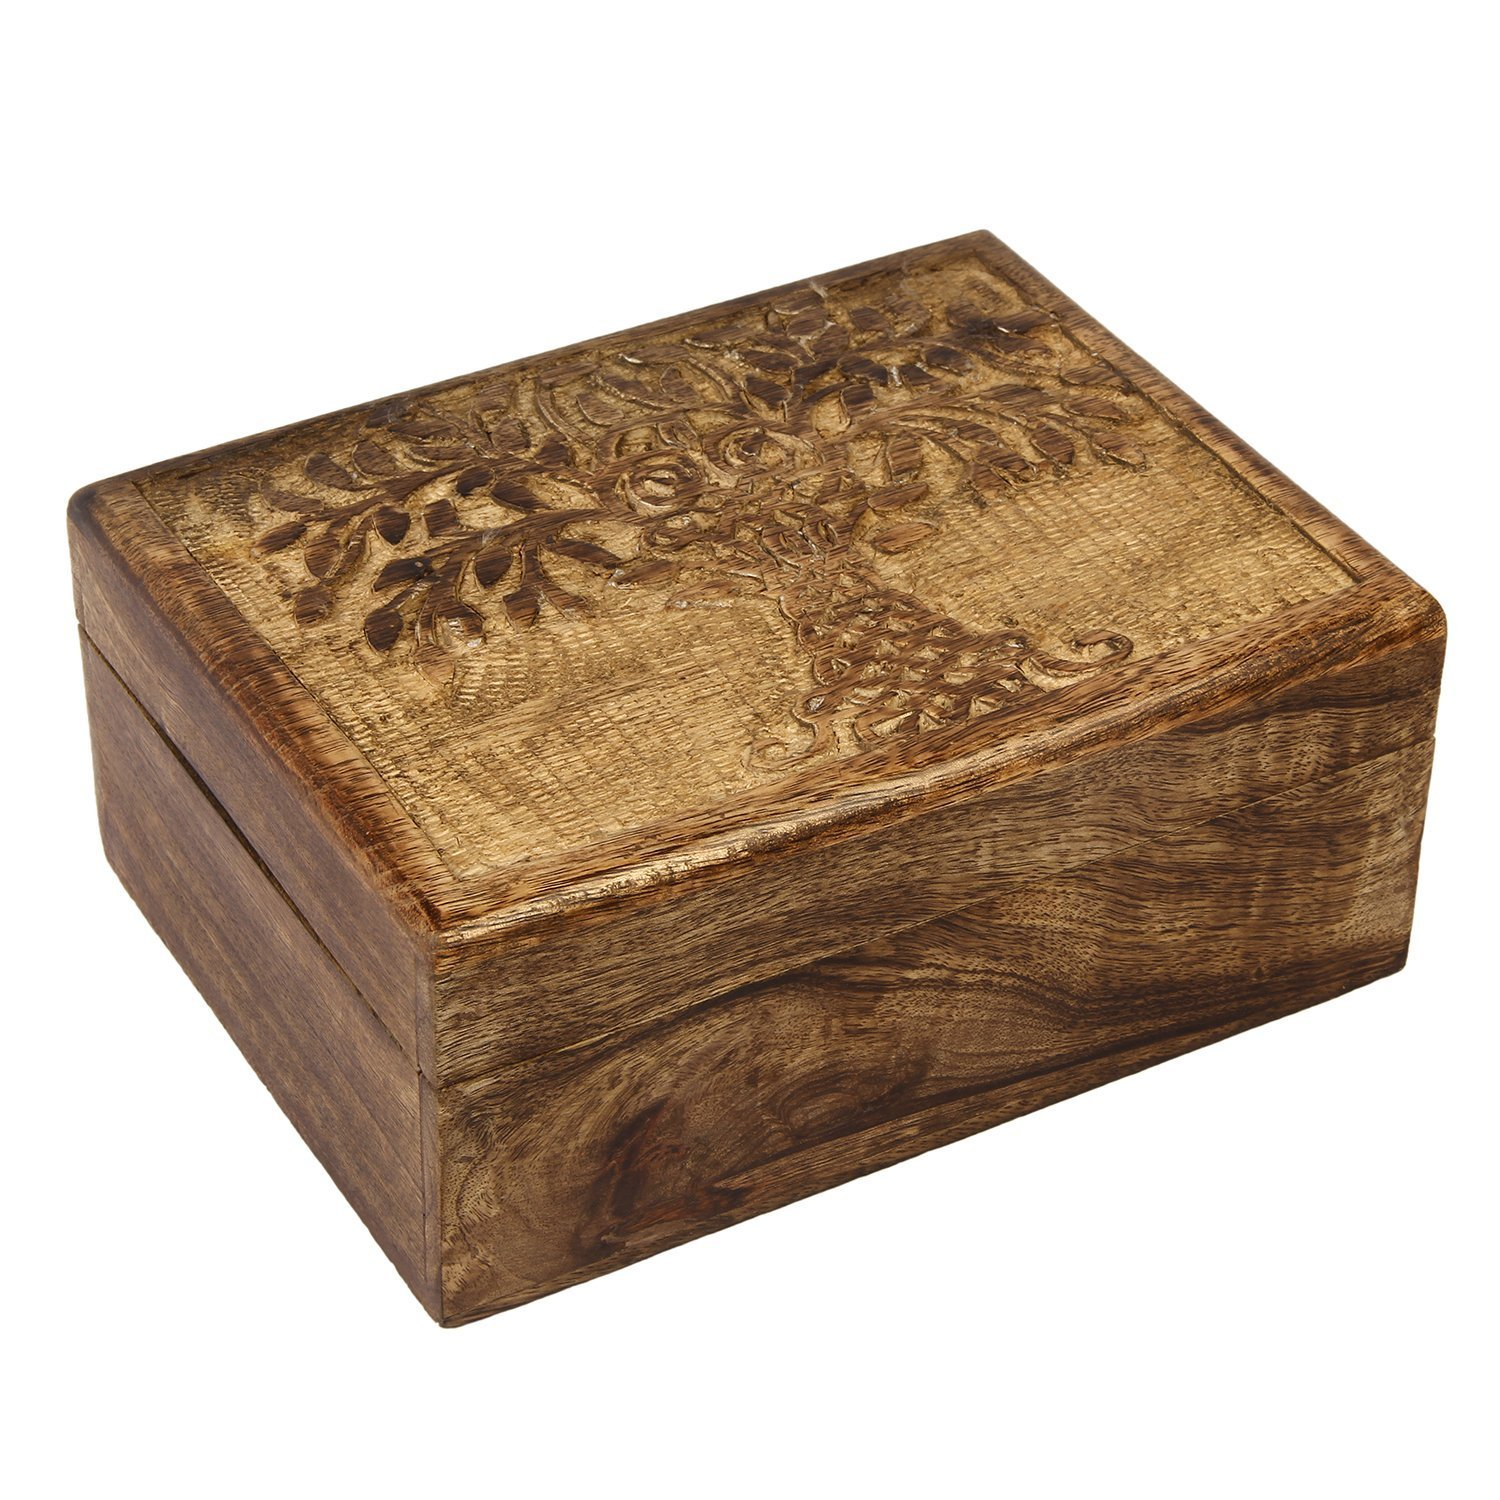 Icrafts India Wooden Tree of Life Keepsake Trinket Jewelry Box Storage Organizer | Handmade |(9 x 6 in)